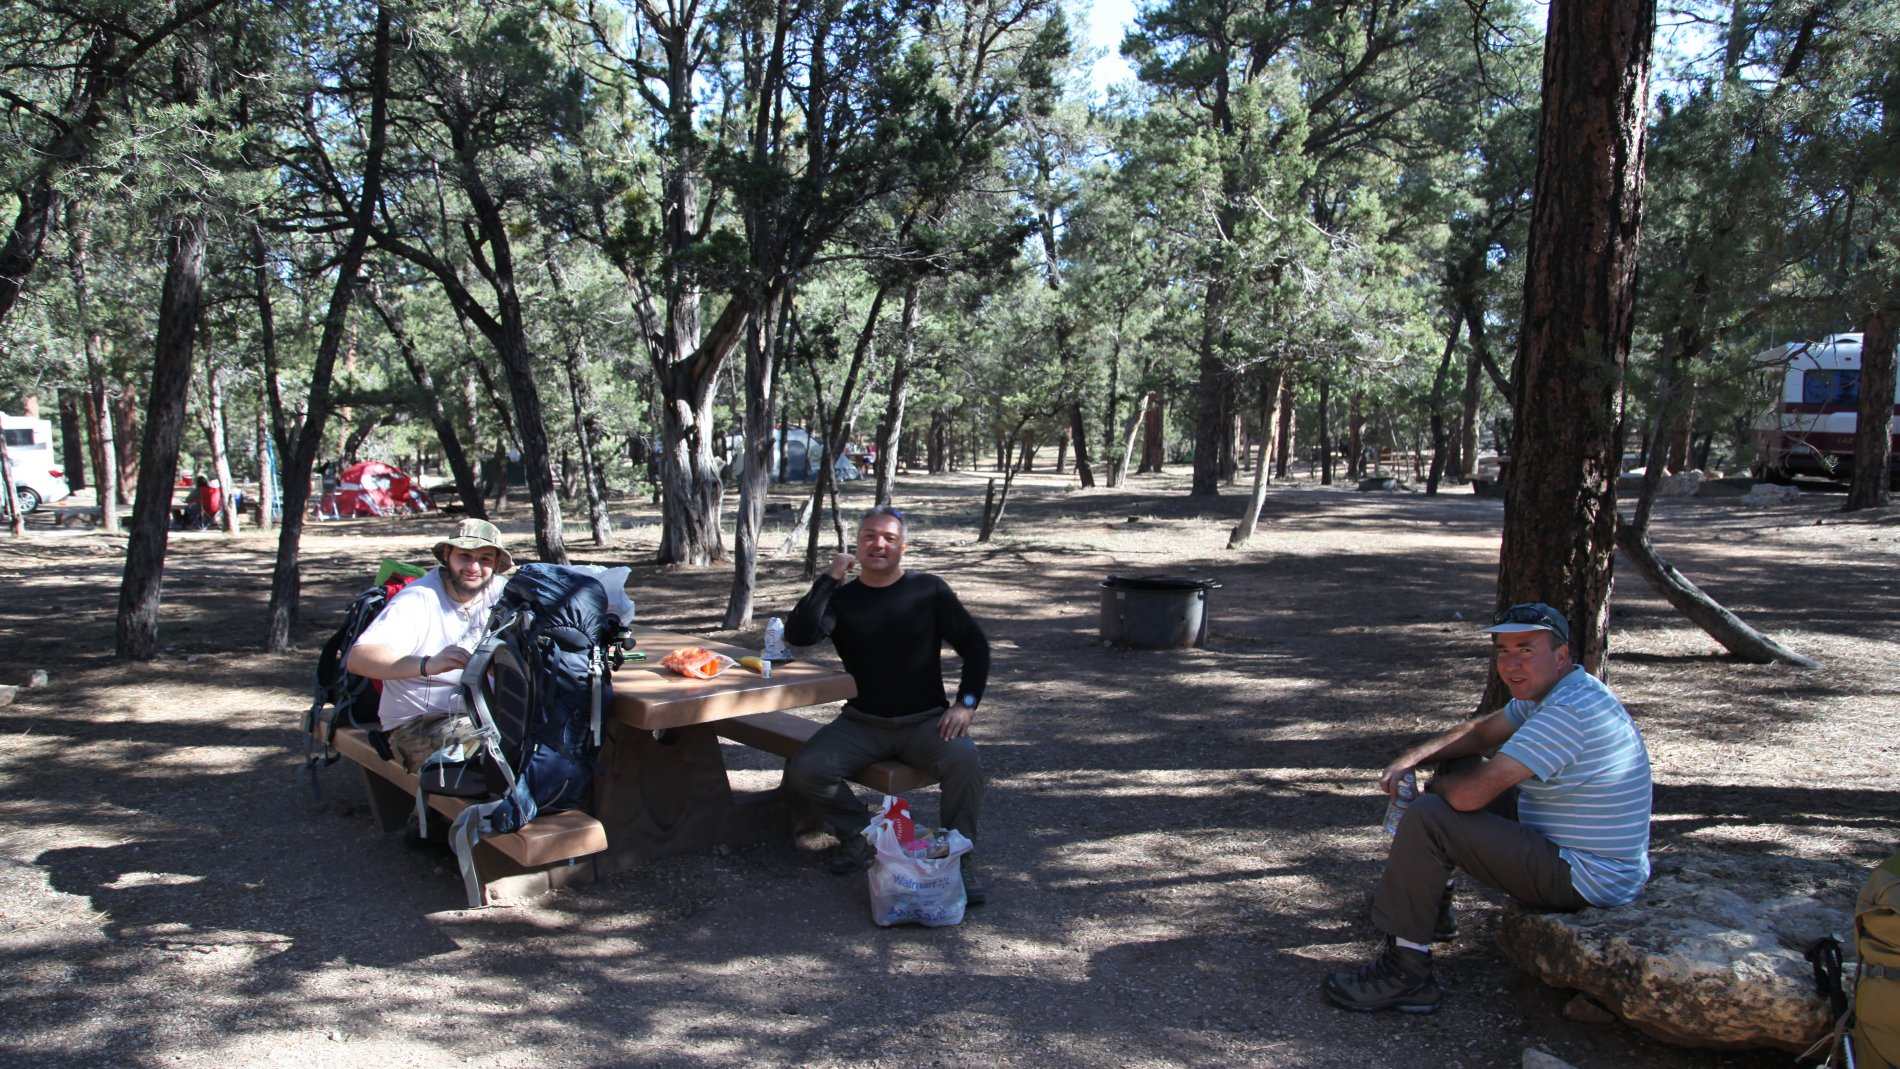 IMG_0989.JPG: Grand Canyon , south rim campground